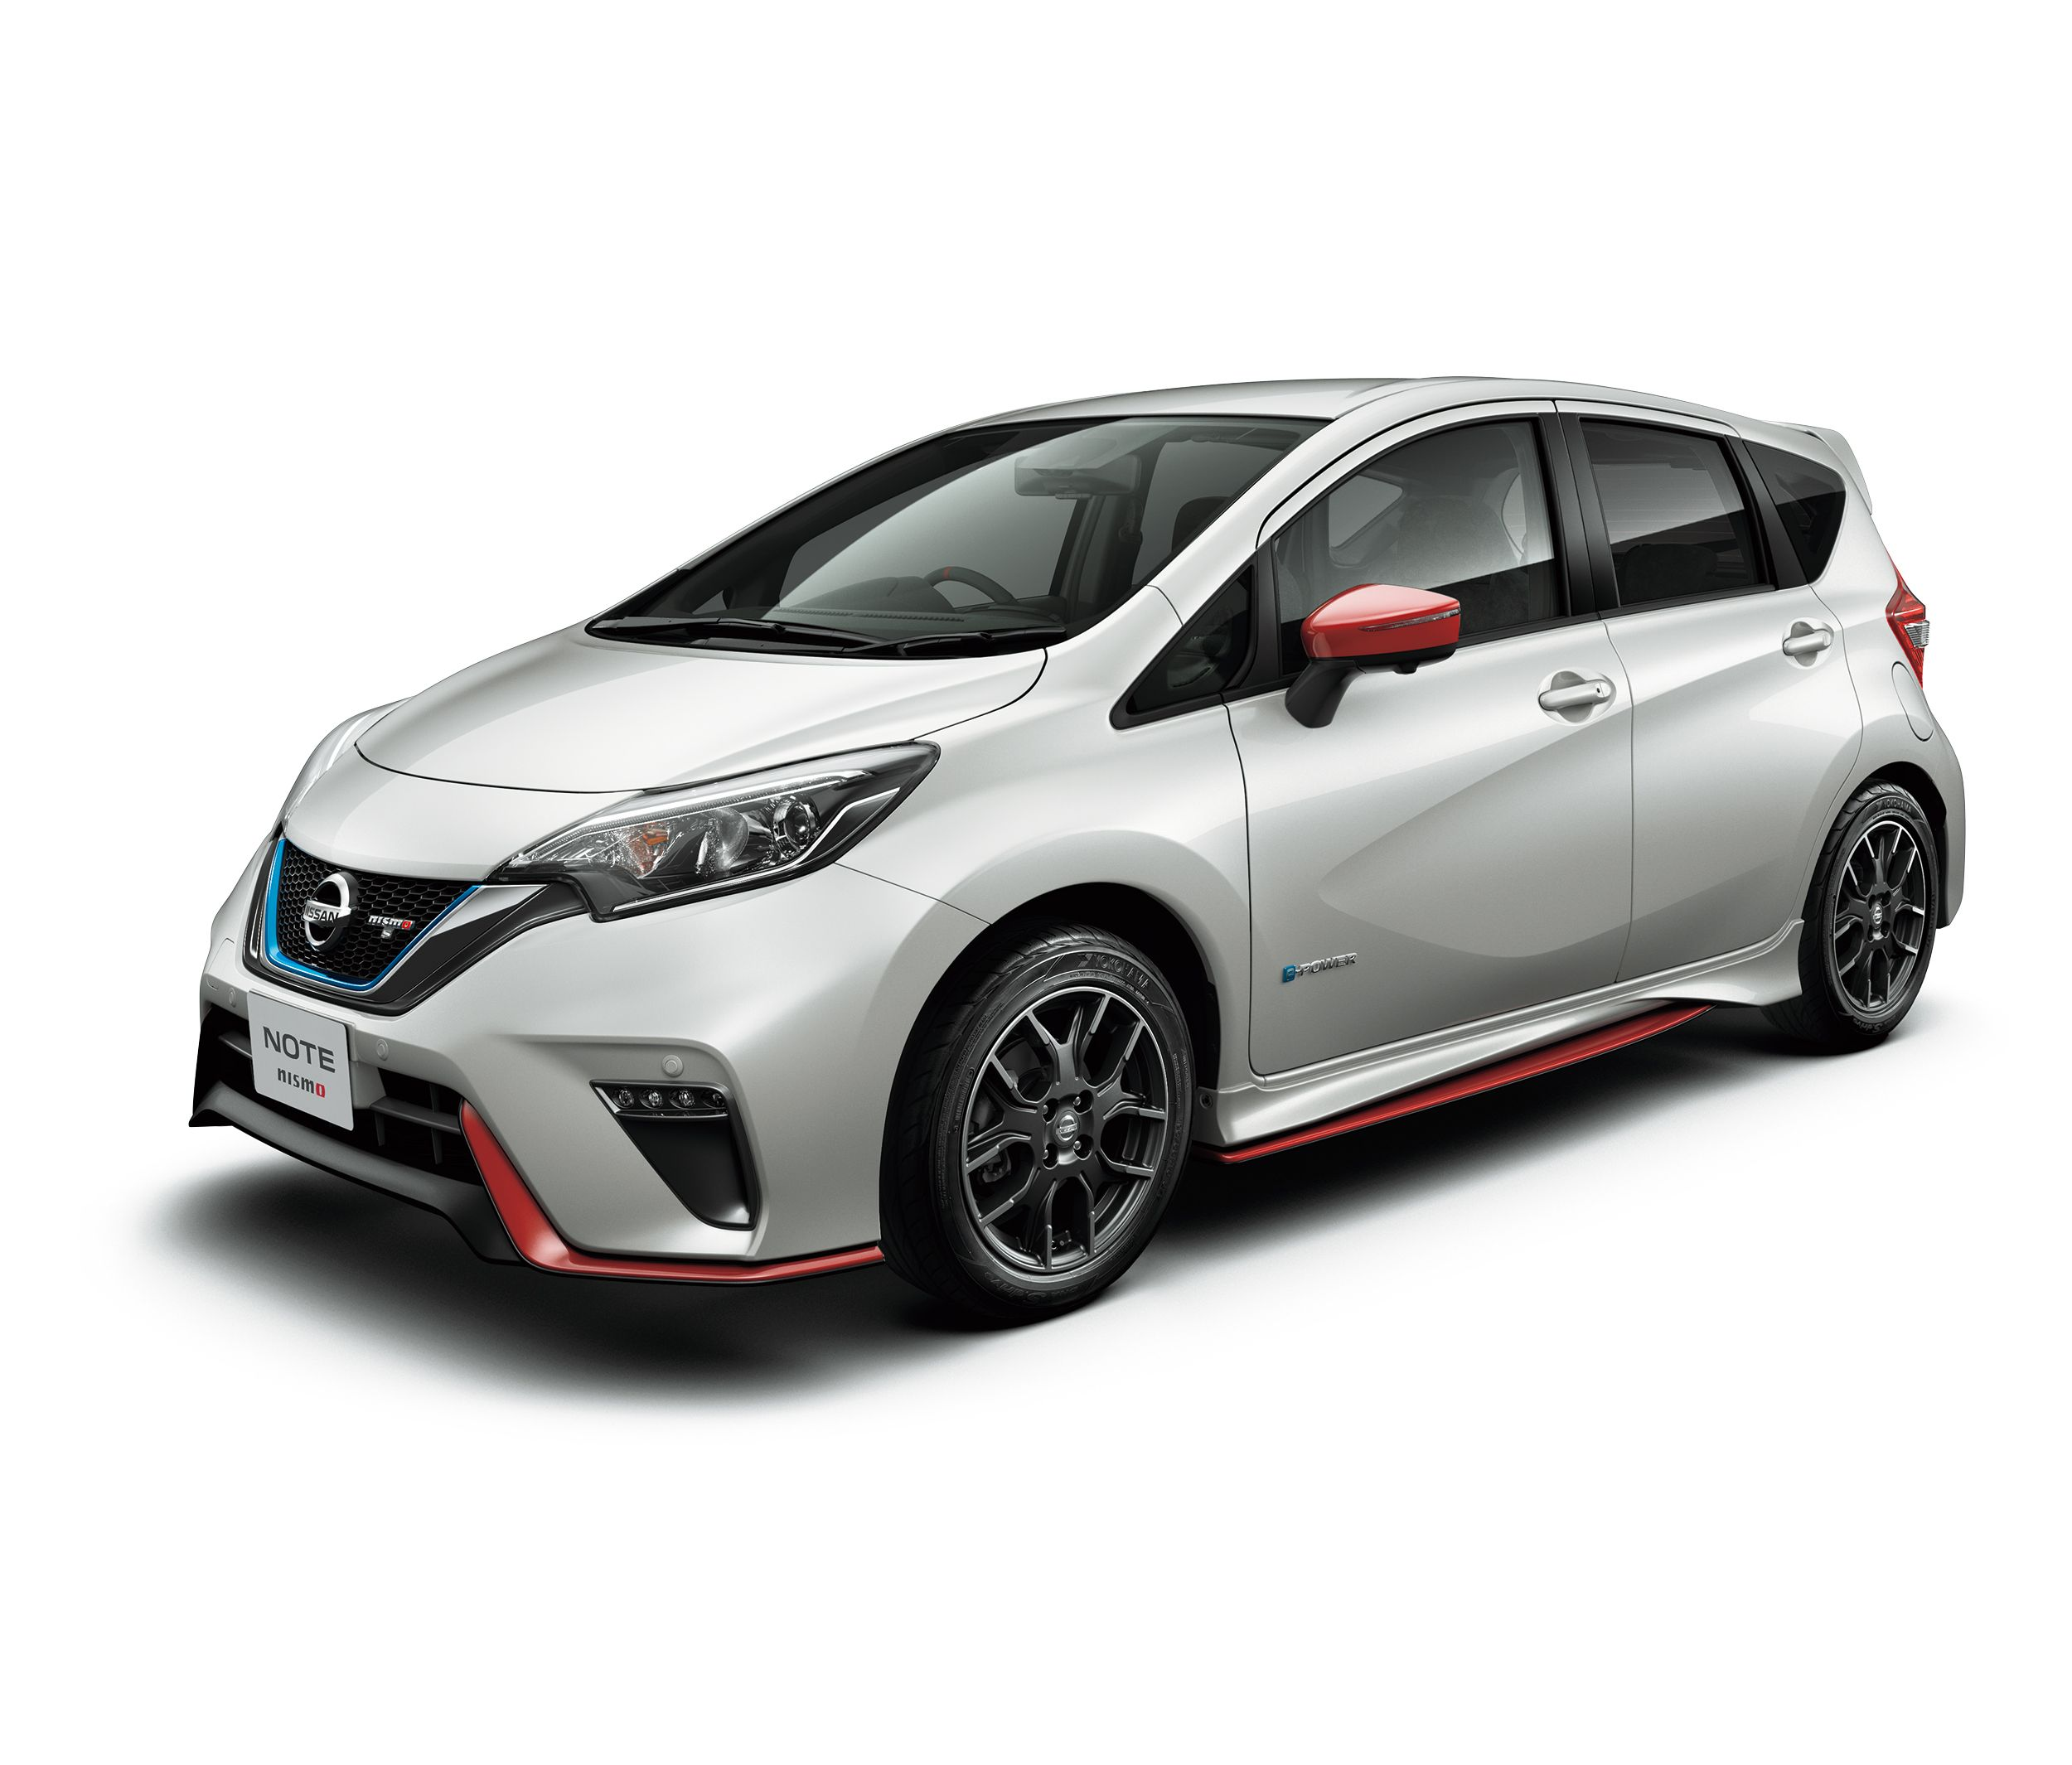 2019 Nissan Note E Power Nismo S Top Speed Nissan Note Nissan Nissan Sports Cars